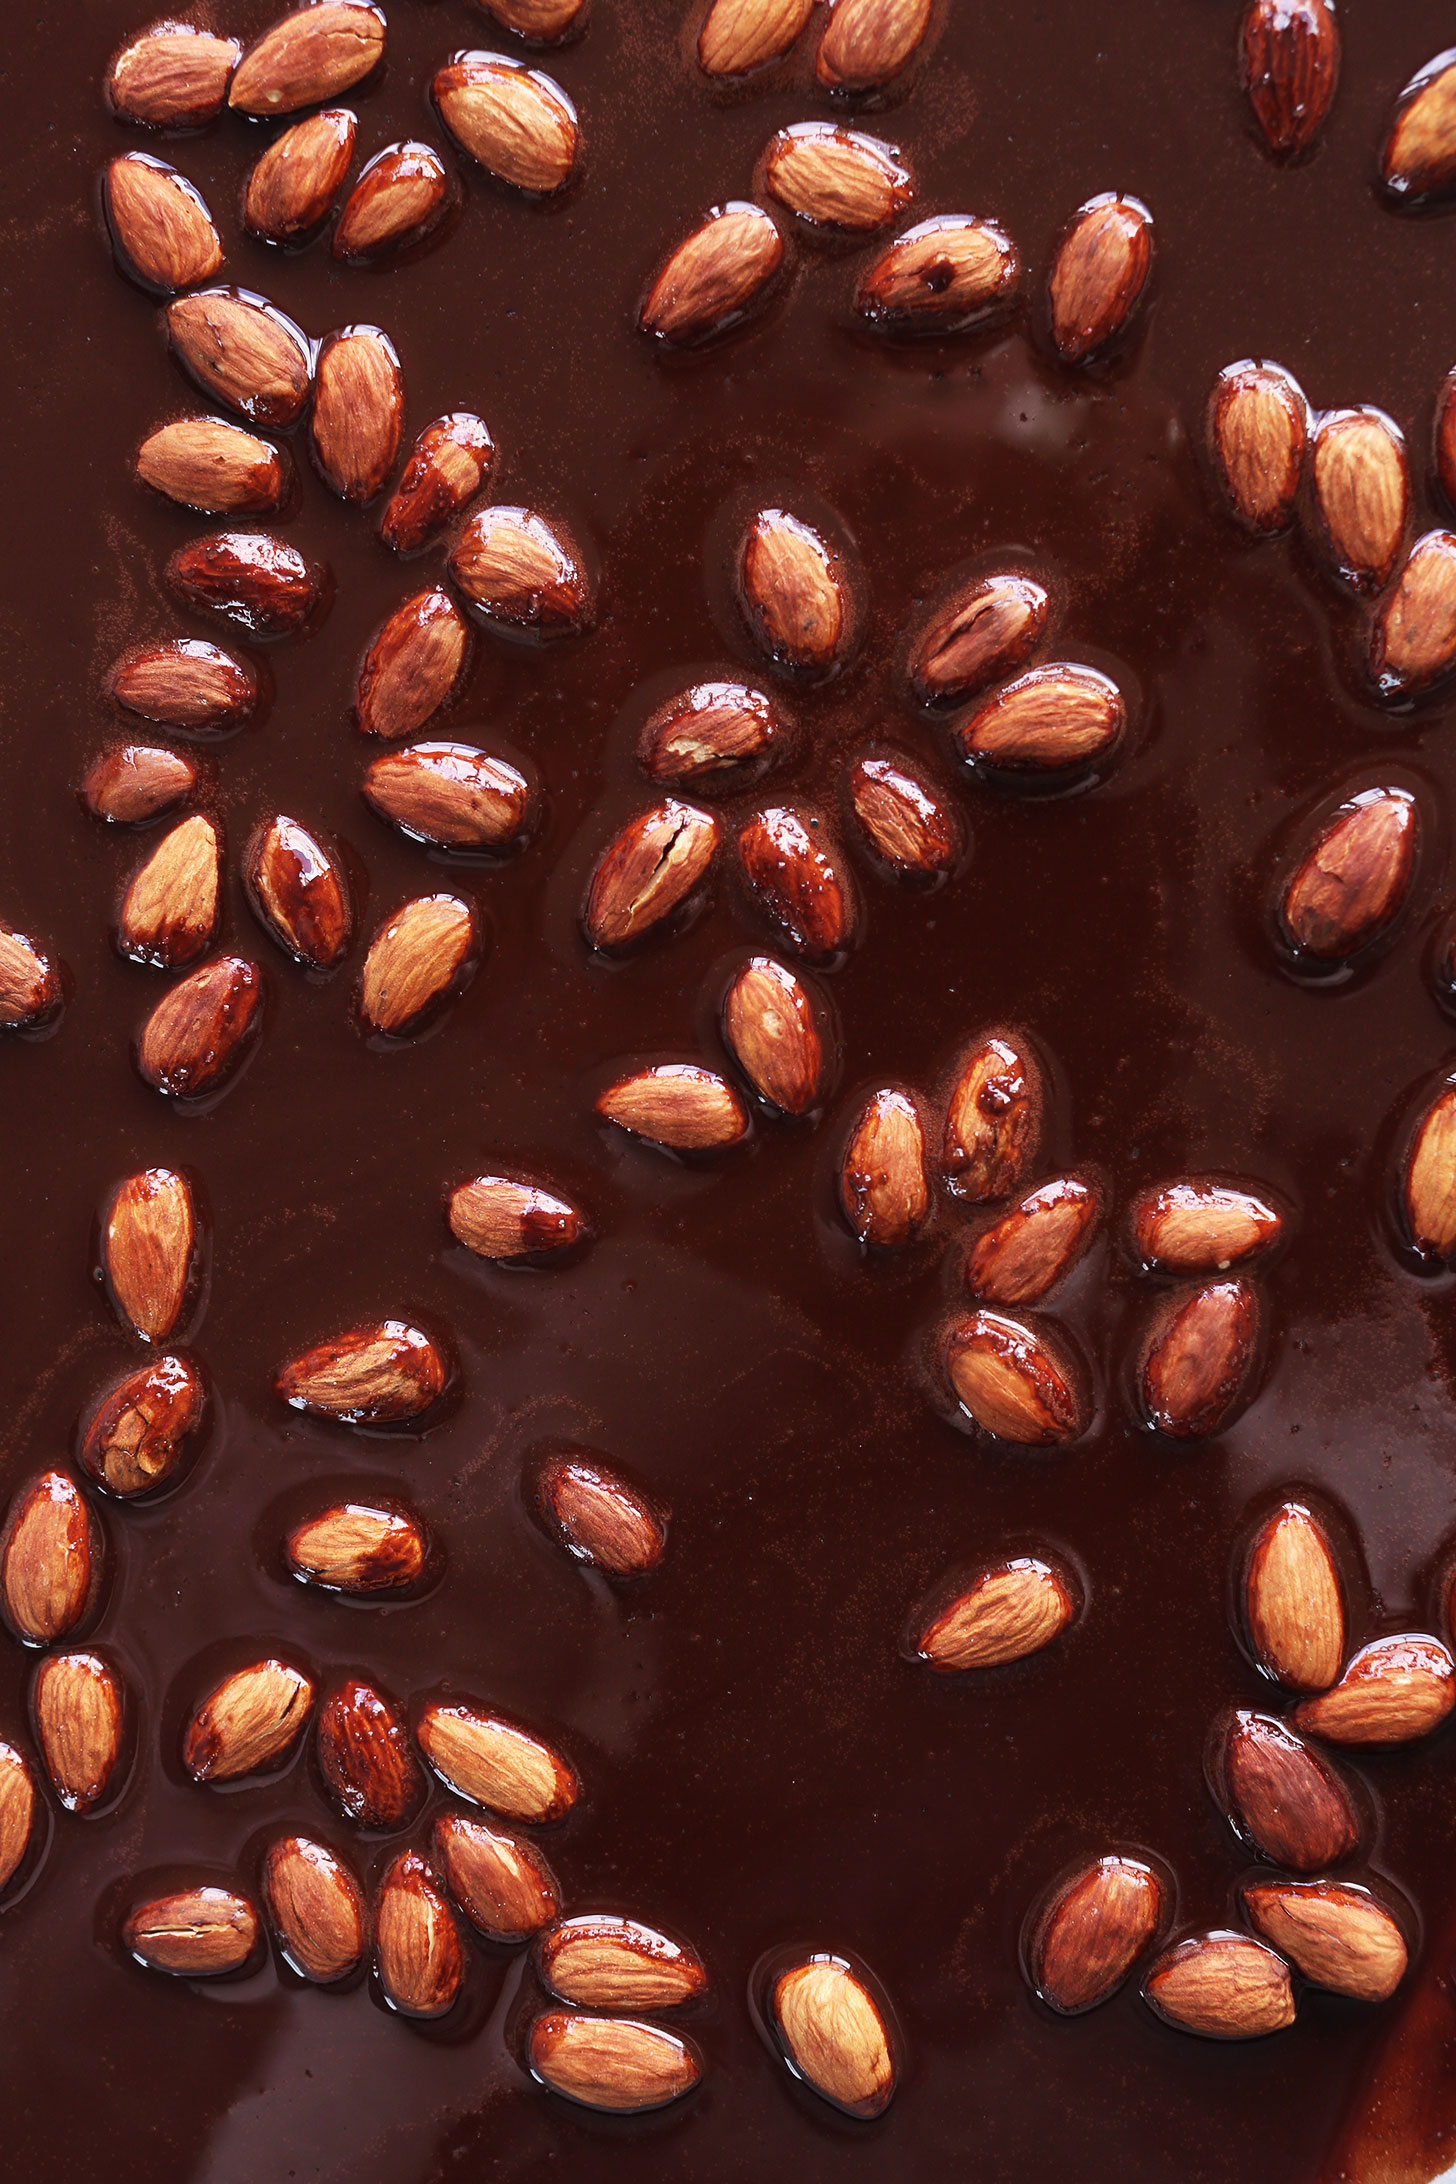 Pan of Almonds in Dark Chocolate for homemade Dark Chocolate Bars